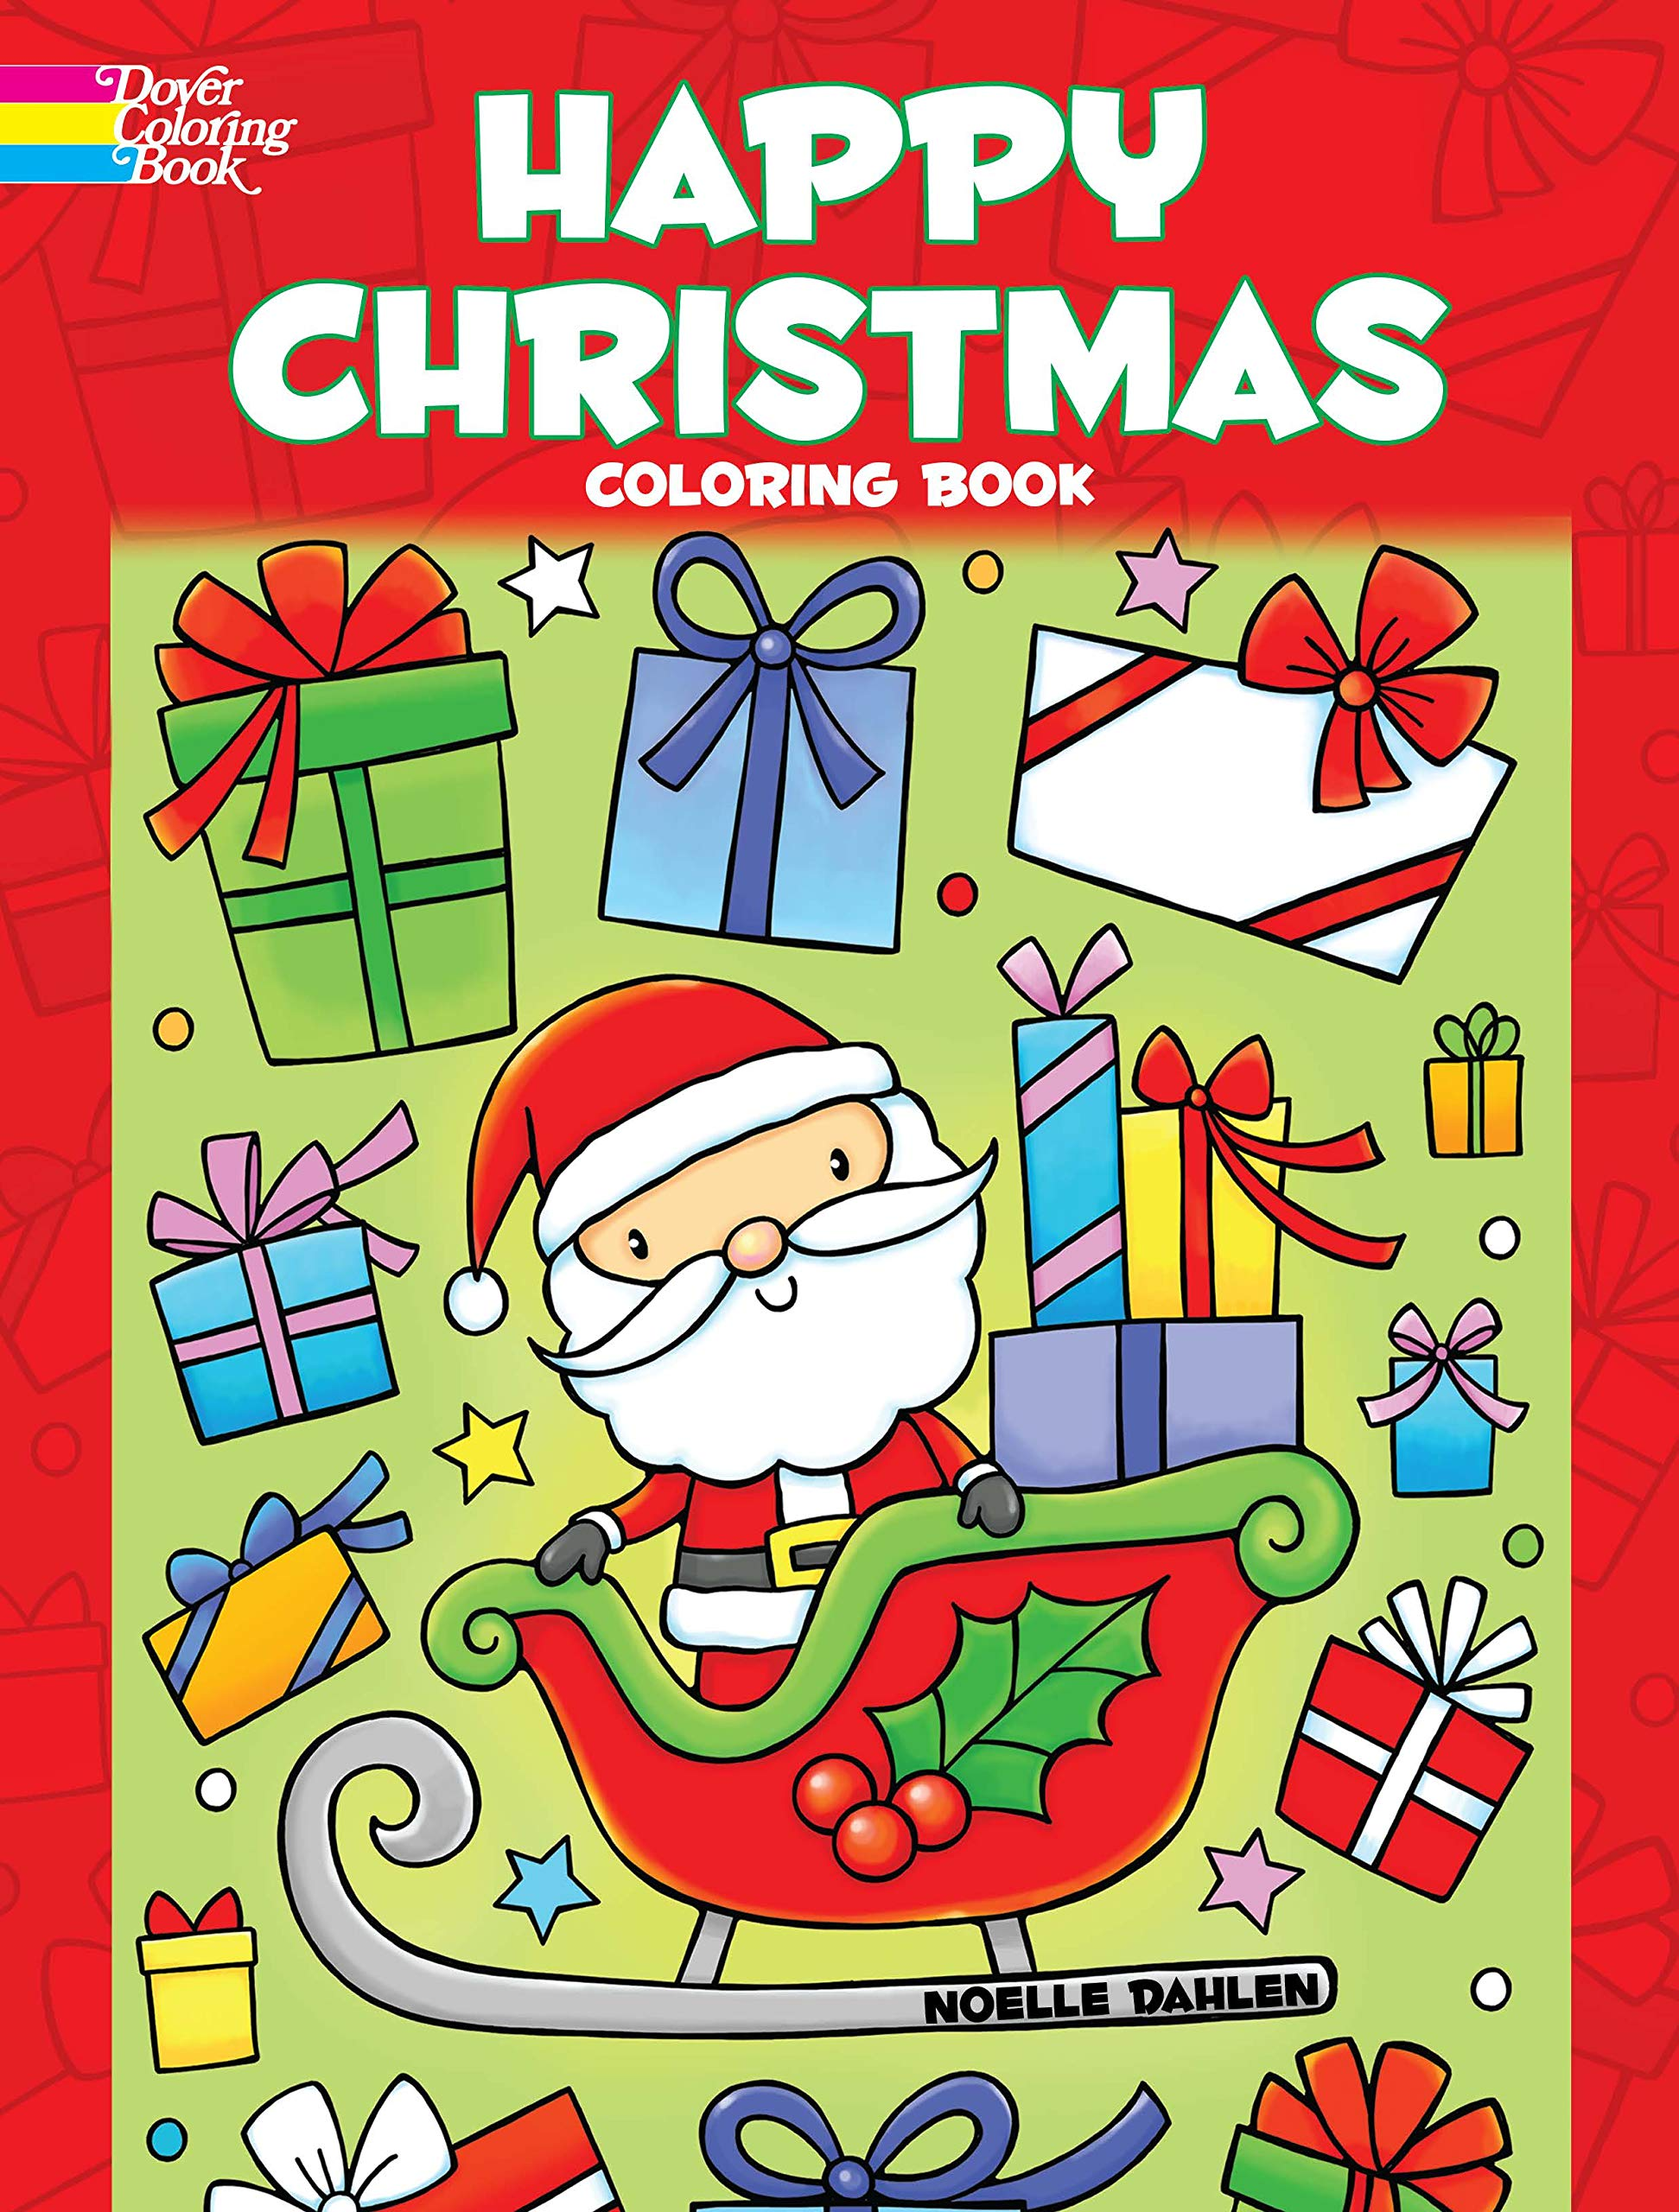 - Happy Christmas Coloring Book (Dover Coloring Books): Noelle